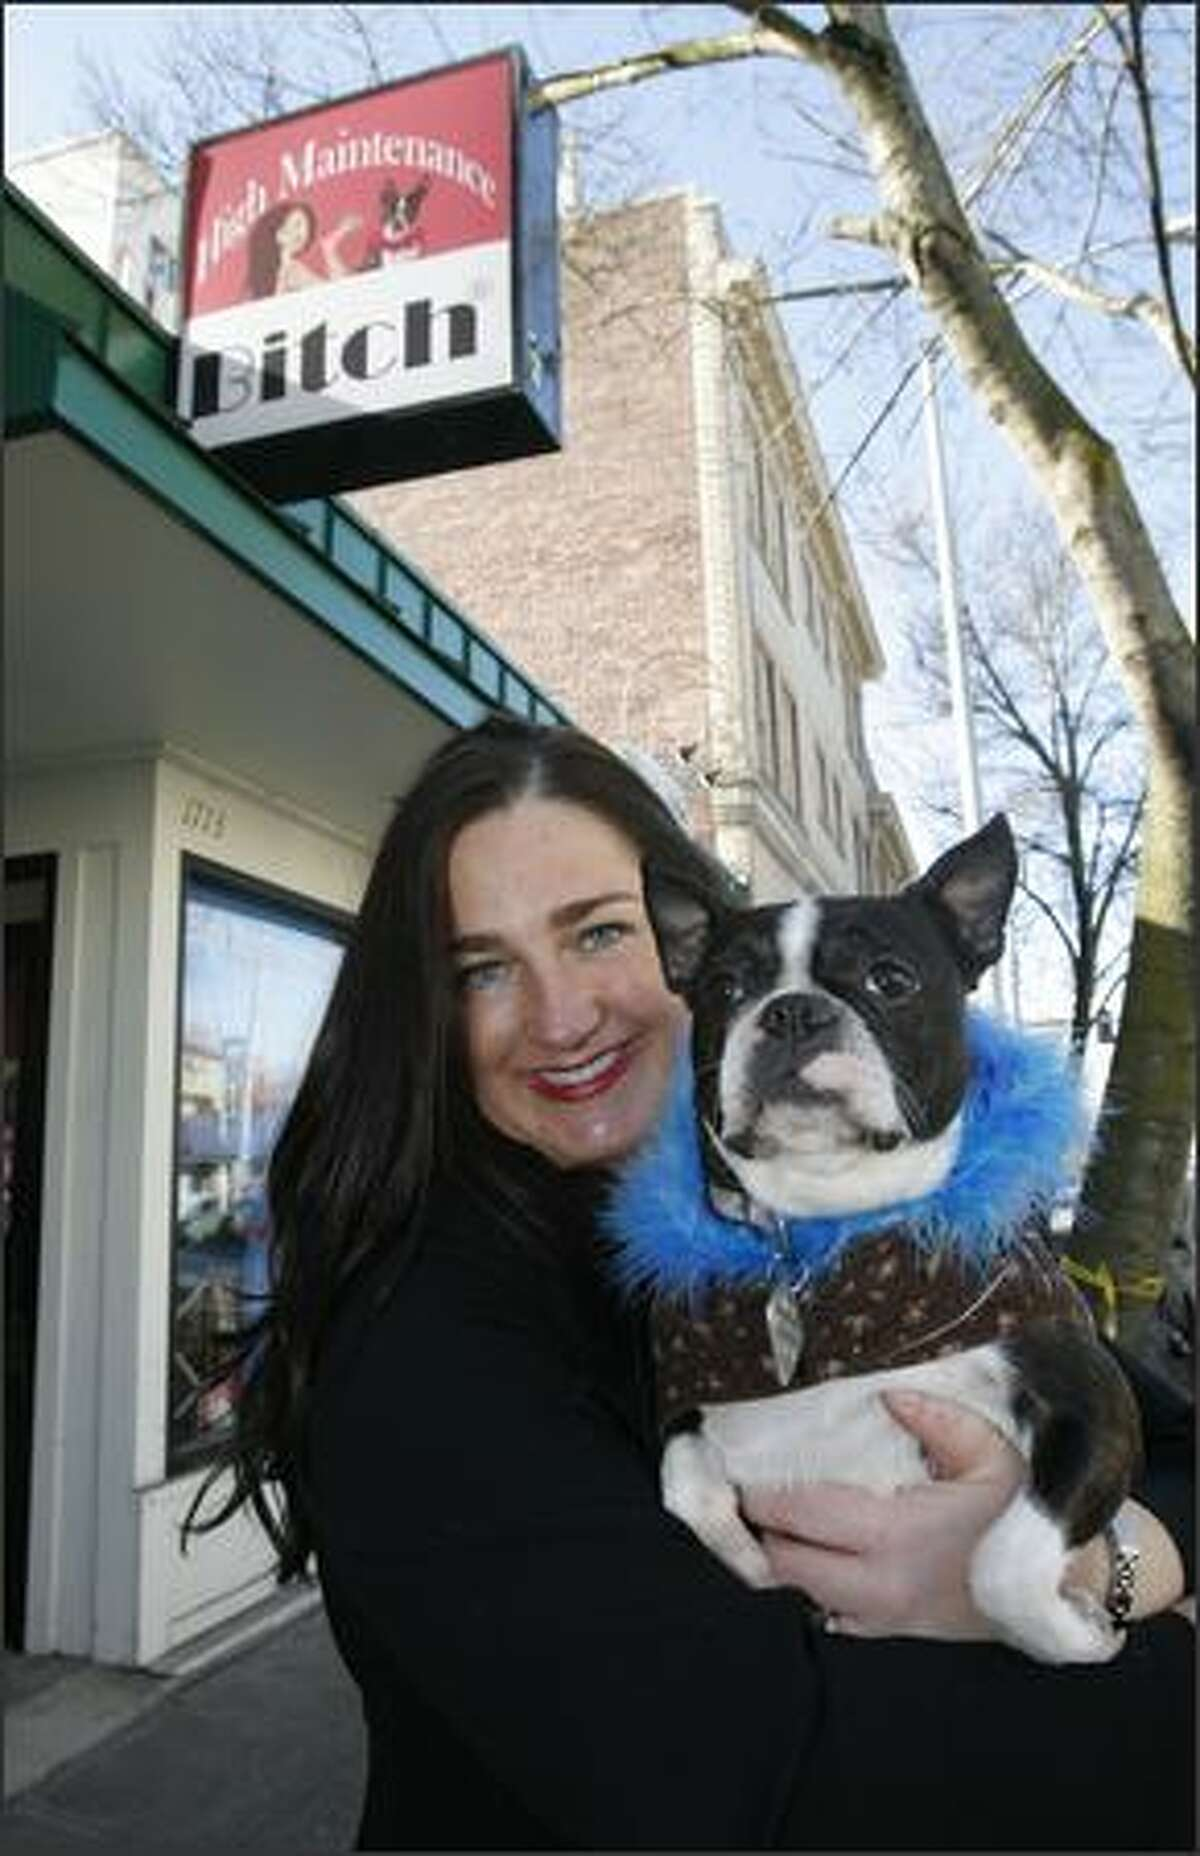 It all began five years ago, when Boston terrier Lola inspired Lori Pacchiano and her brother to make pet feather boas in their grandmother's North Seattle garage.